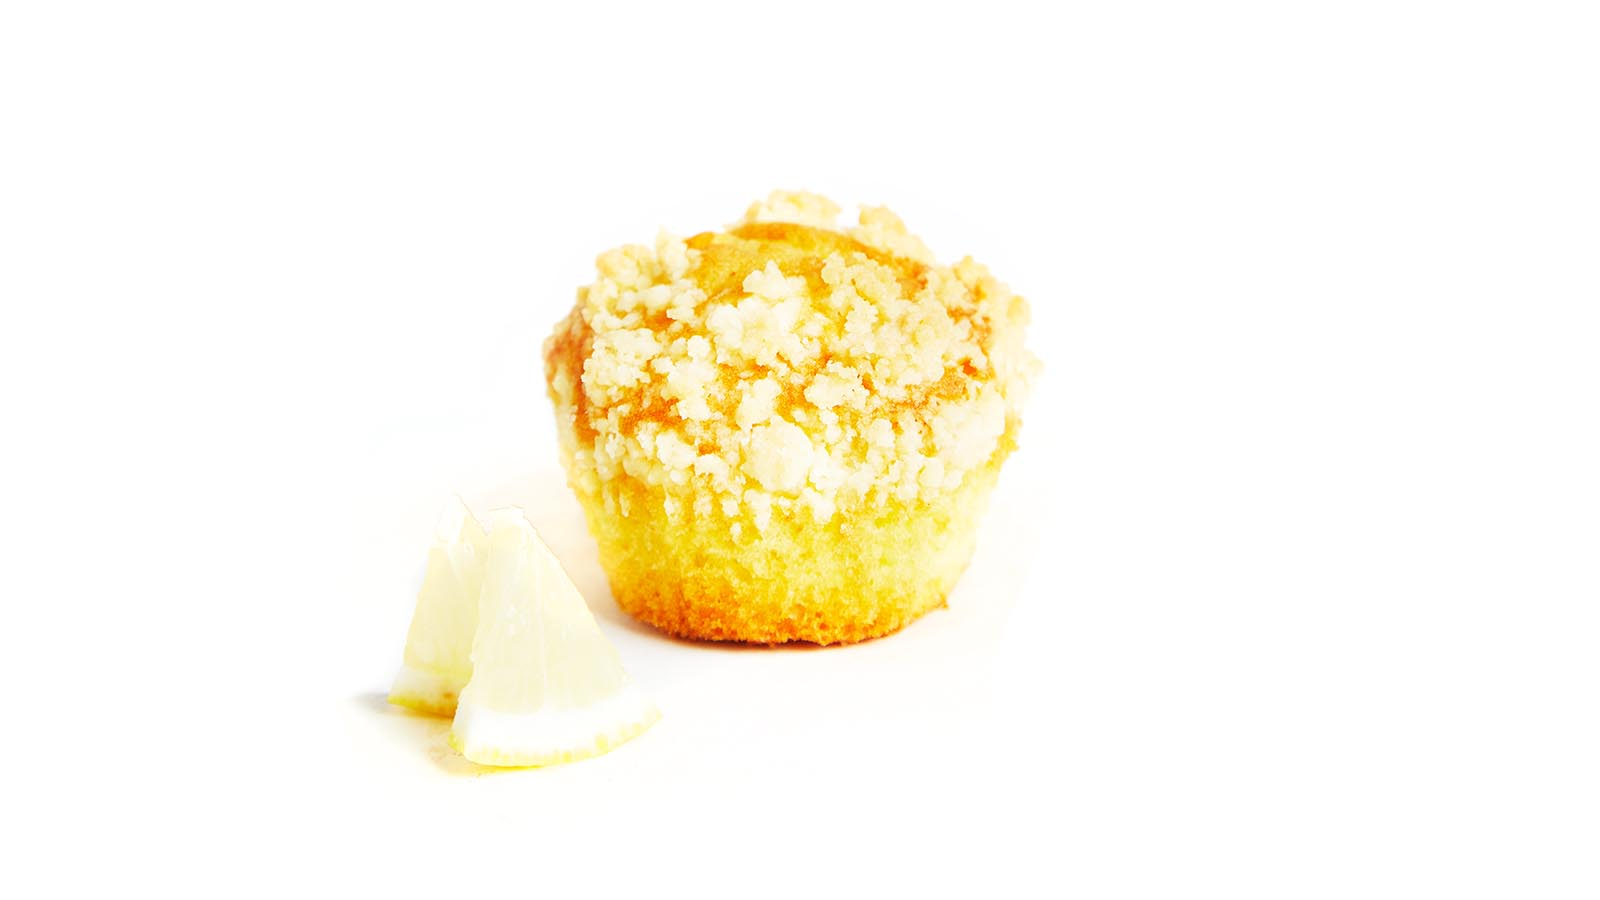 Lemon muffin with sugar crum11/4